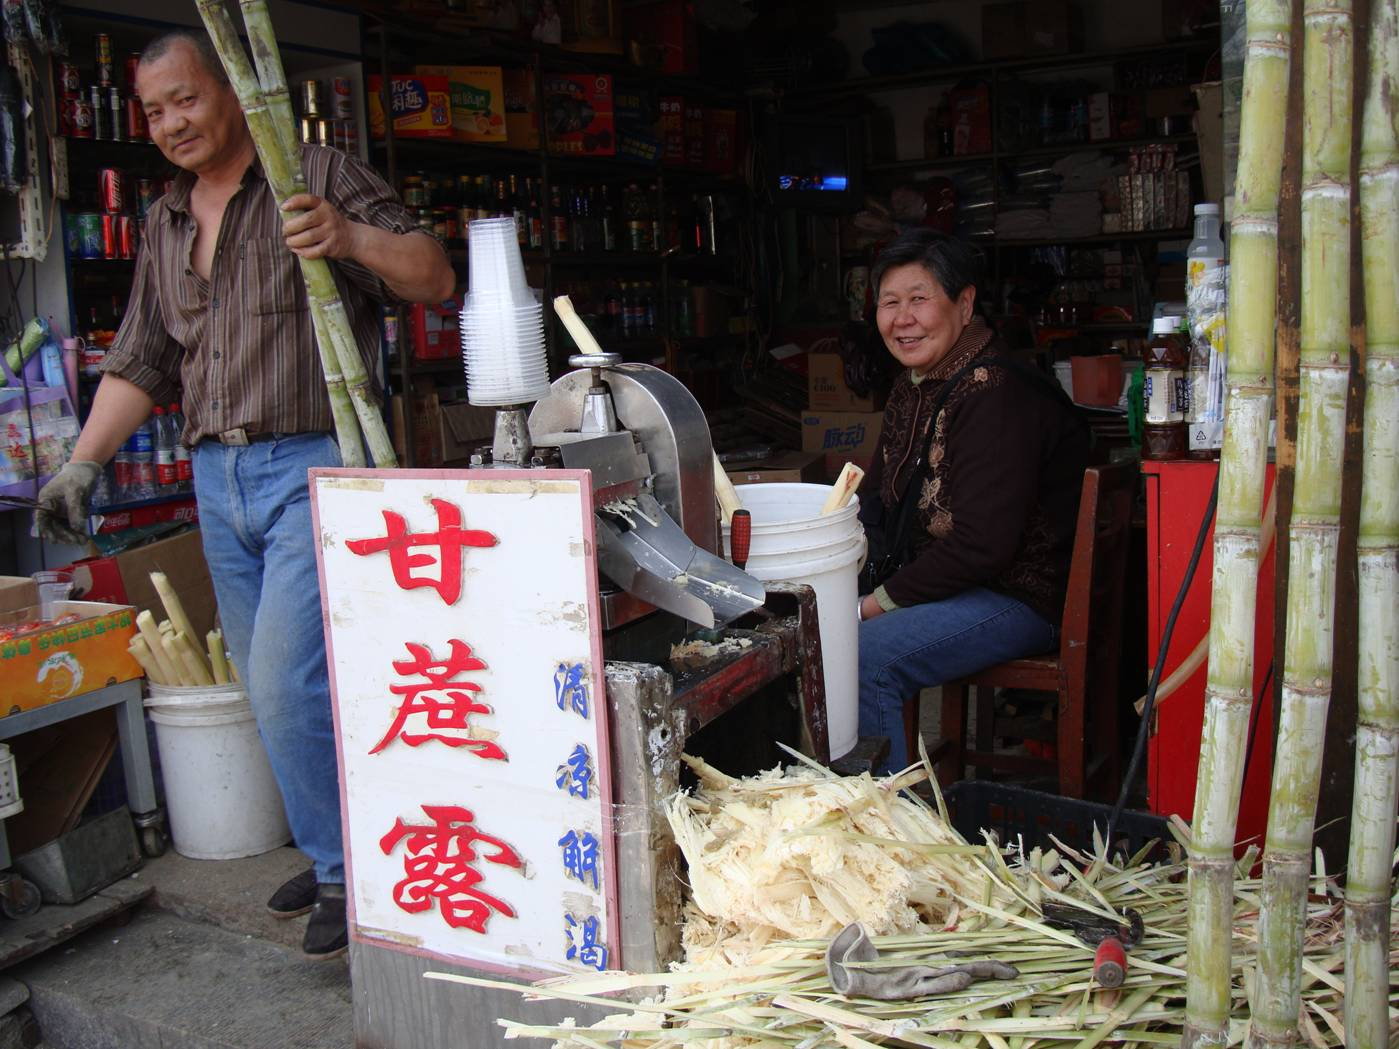 Picture:  A sugar cane and cane juice shop in the Suzhou market.  Suzhou, China